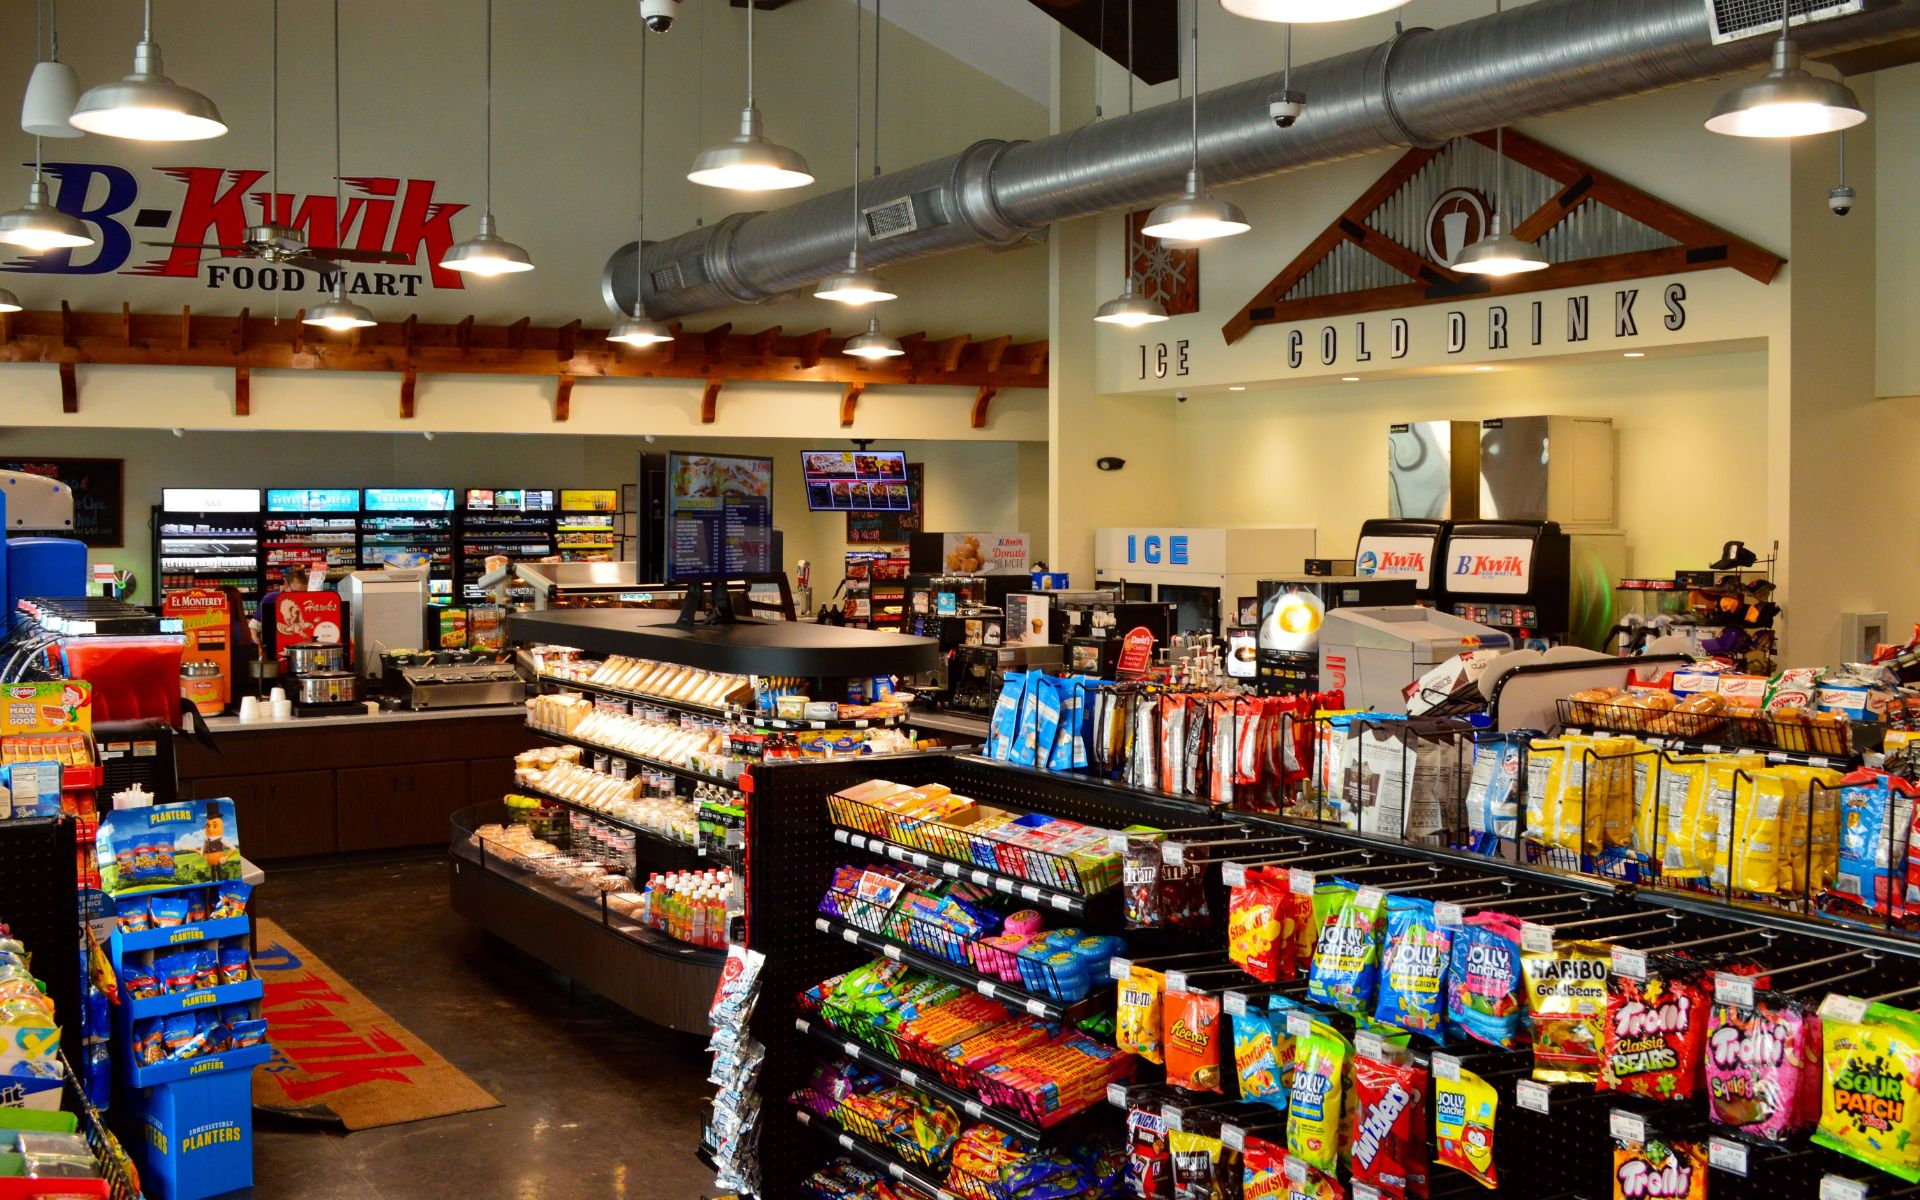 Interior of a convenience store with goods on shelves